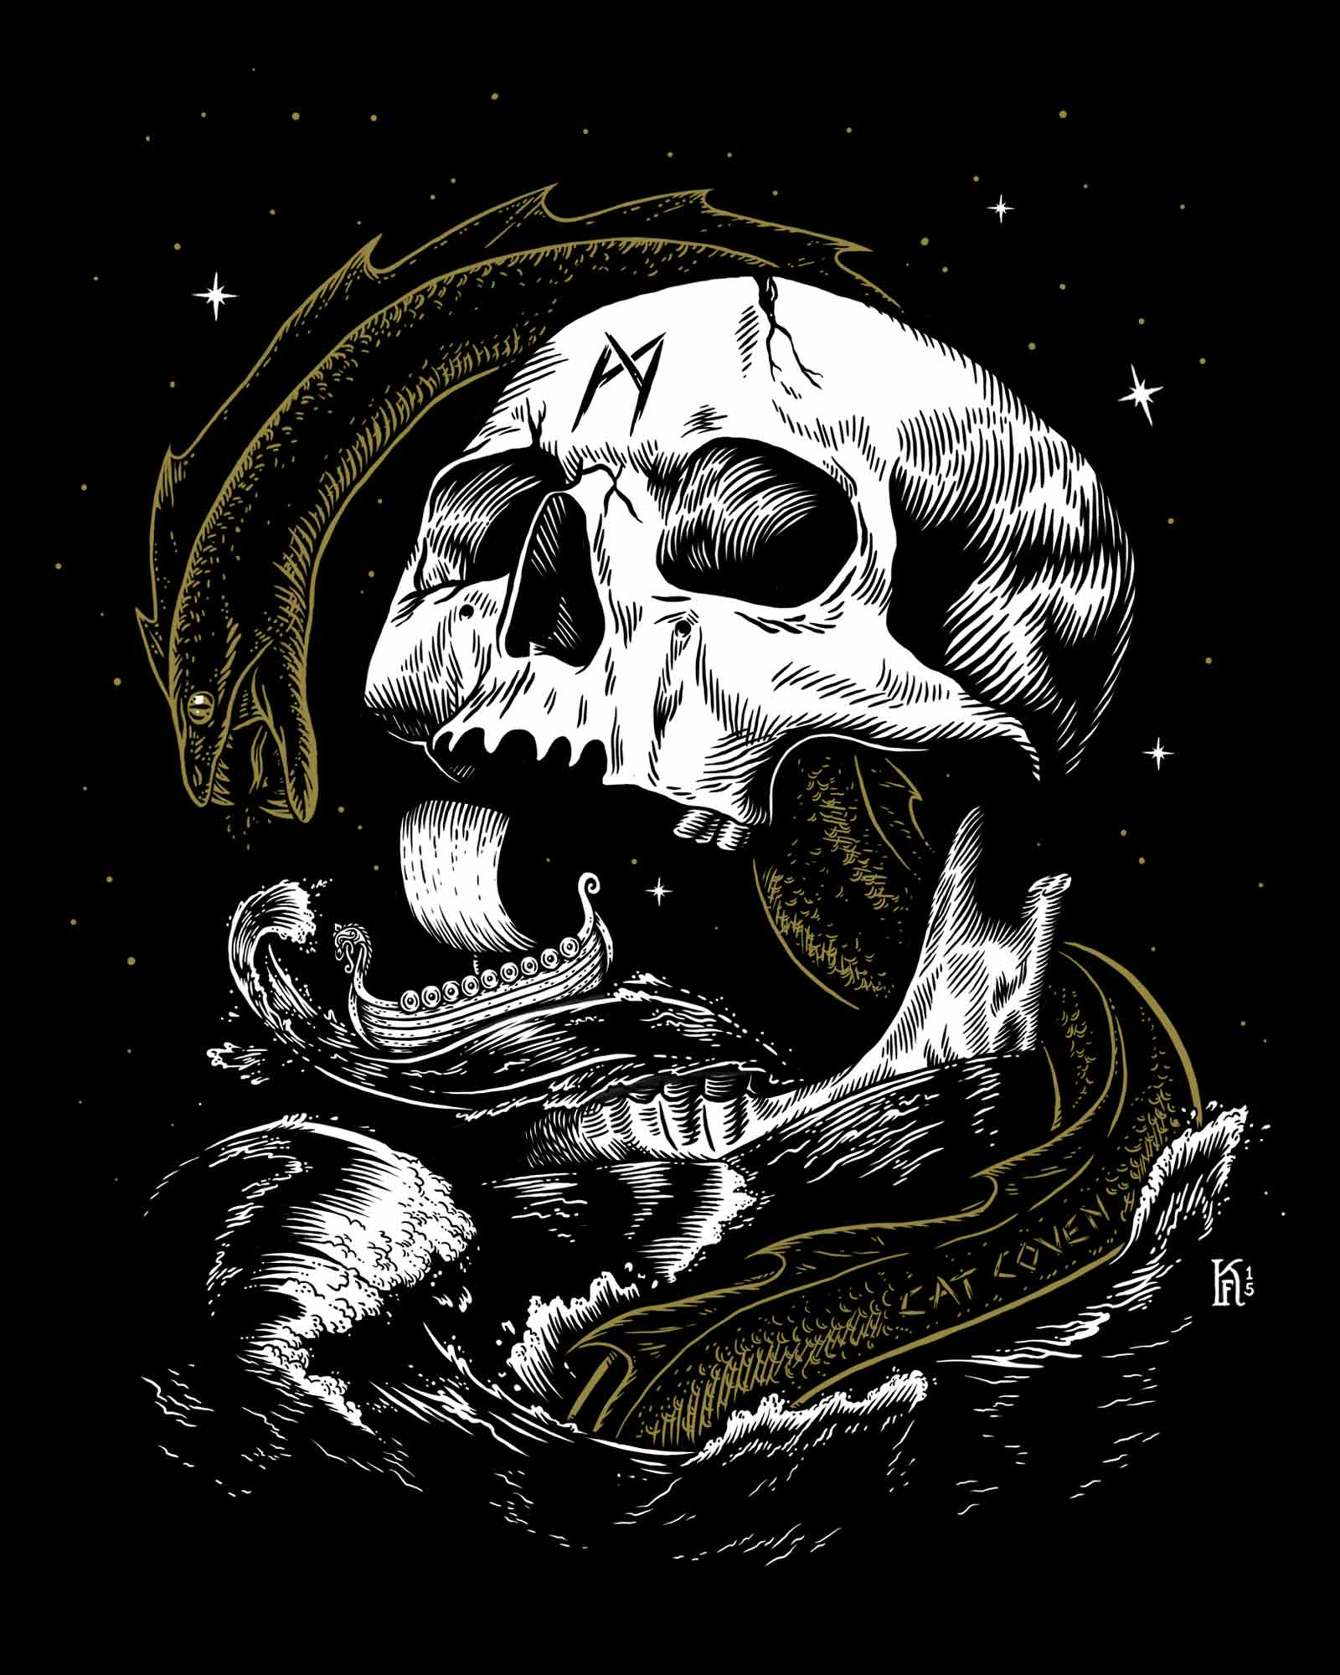 A Viking Age ship in the distance, Jǫrmungandr, the great serpent, writhes from the sea and encircles a skull bearing the rune * mannaz  in Kjersti Faret's  Migard , digital/screen print, 2015.